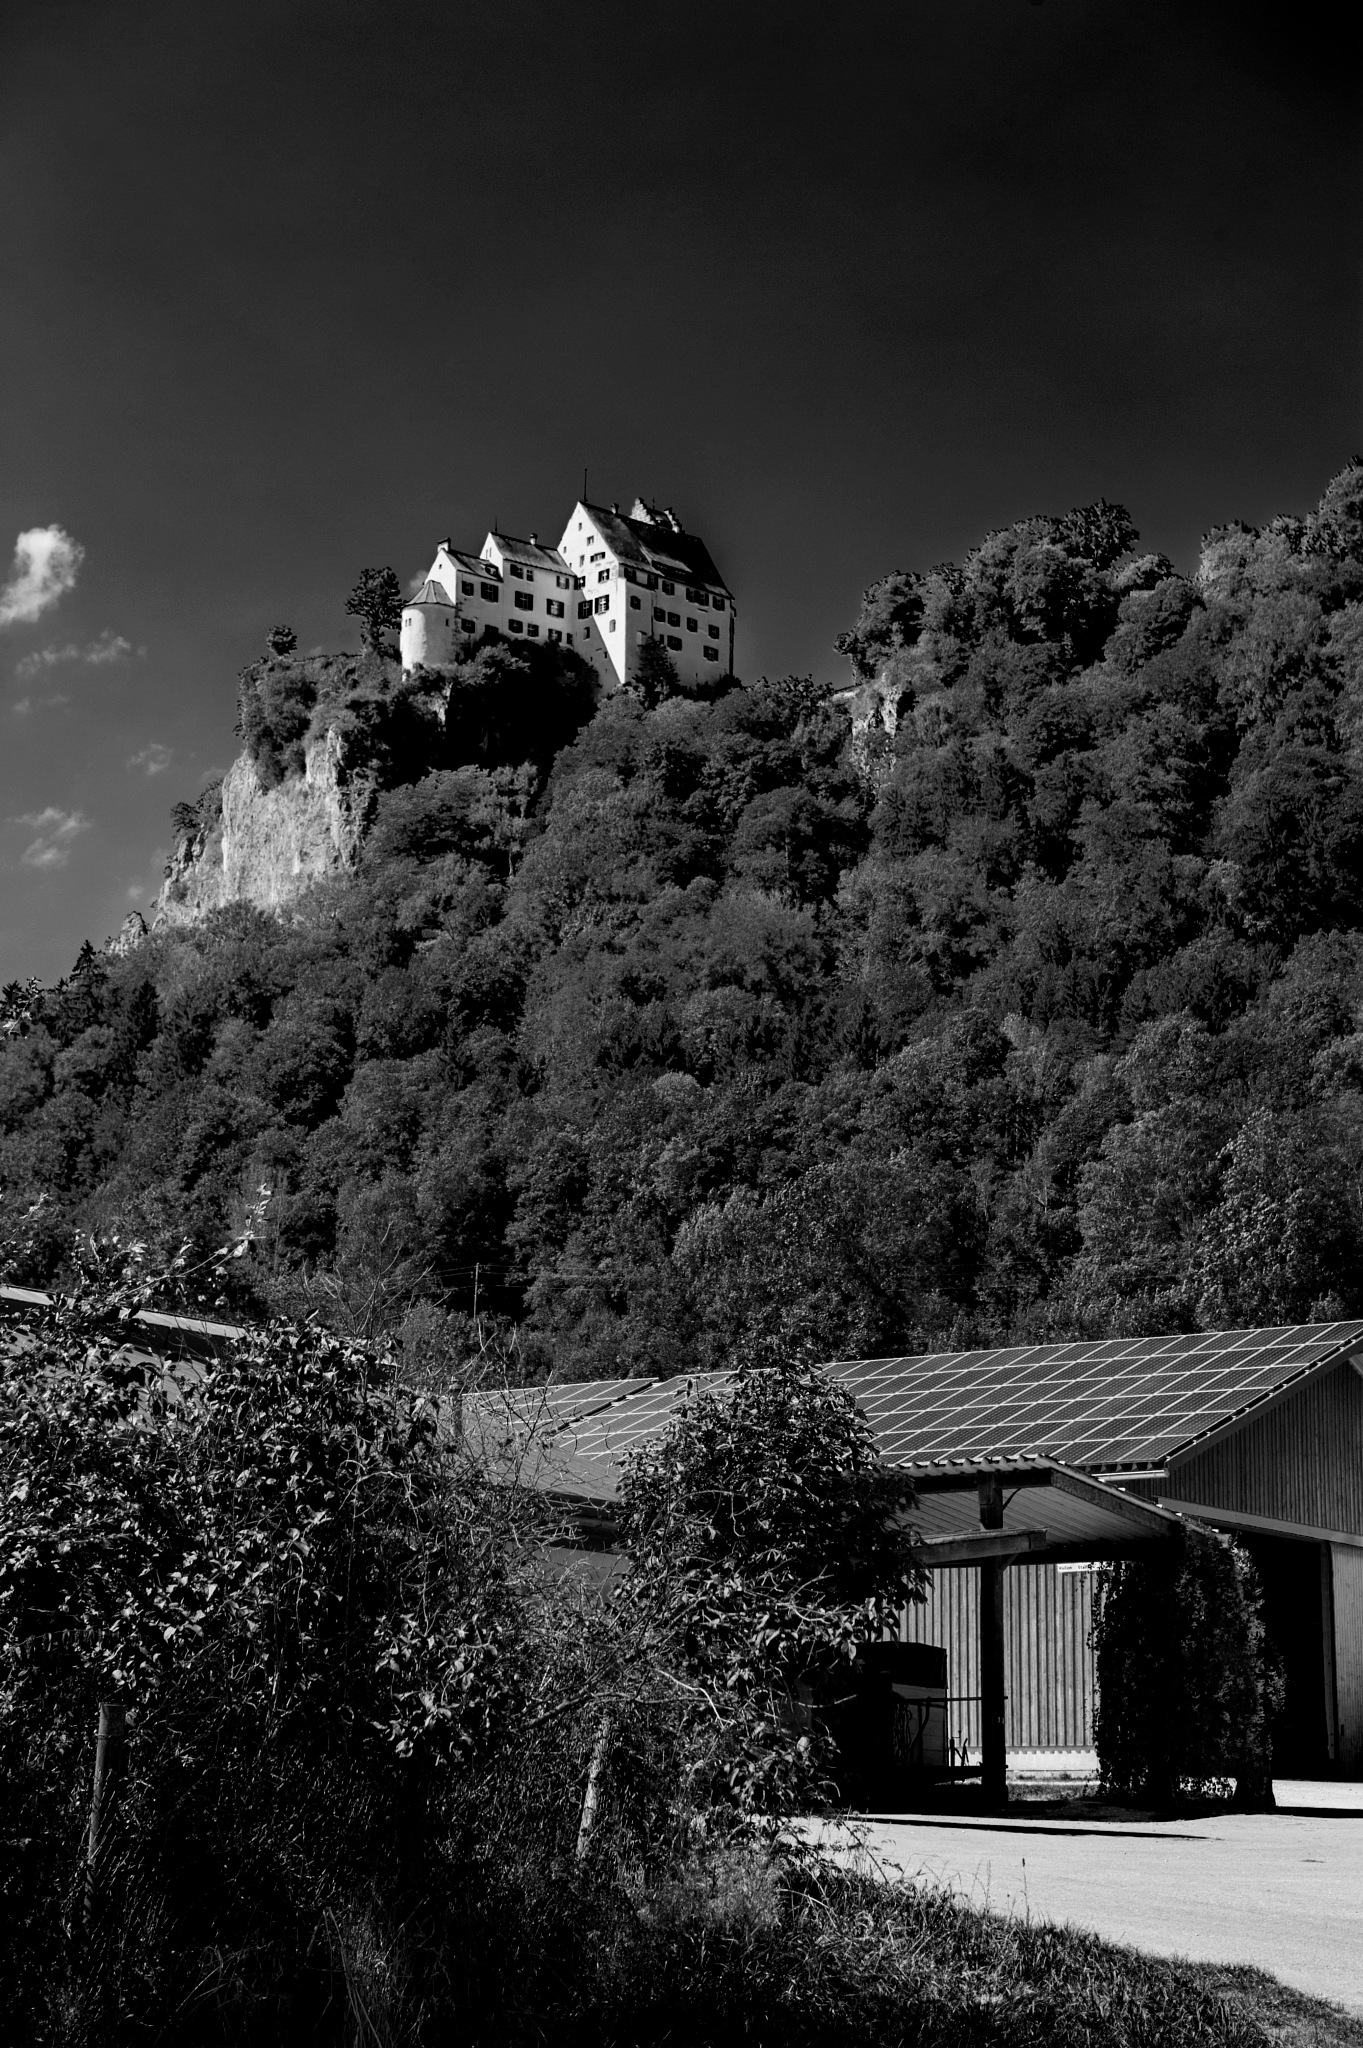 Donau valley by NCO Photography